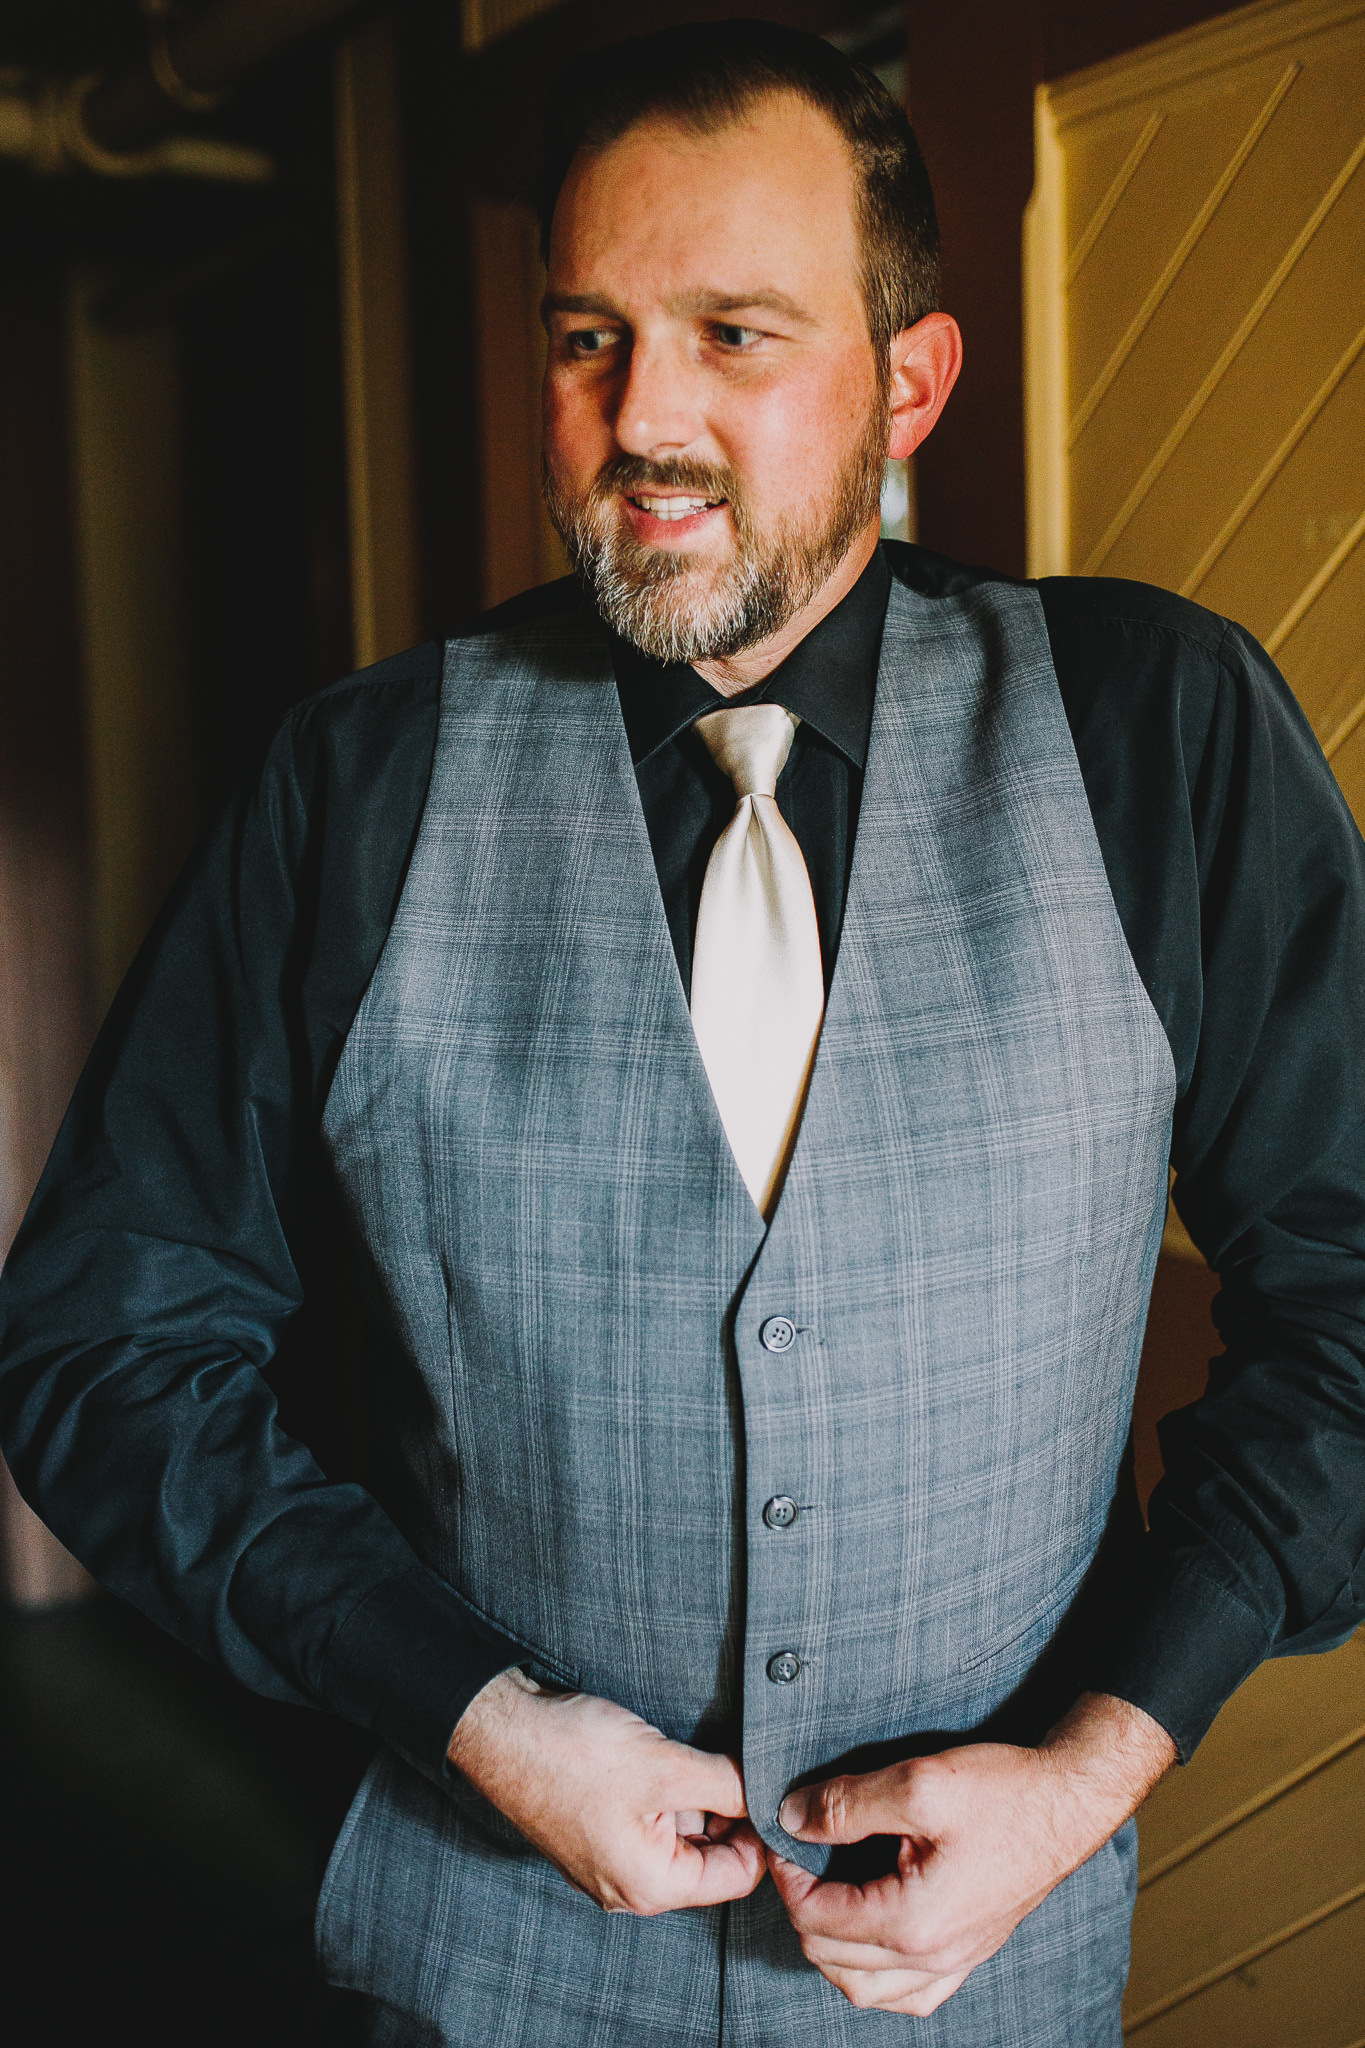 Archer Inspired Photography Sara and Aaron Winchester Mystery House NorCal San Jose California Wedding Photographer-52.jpg